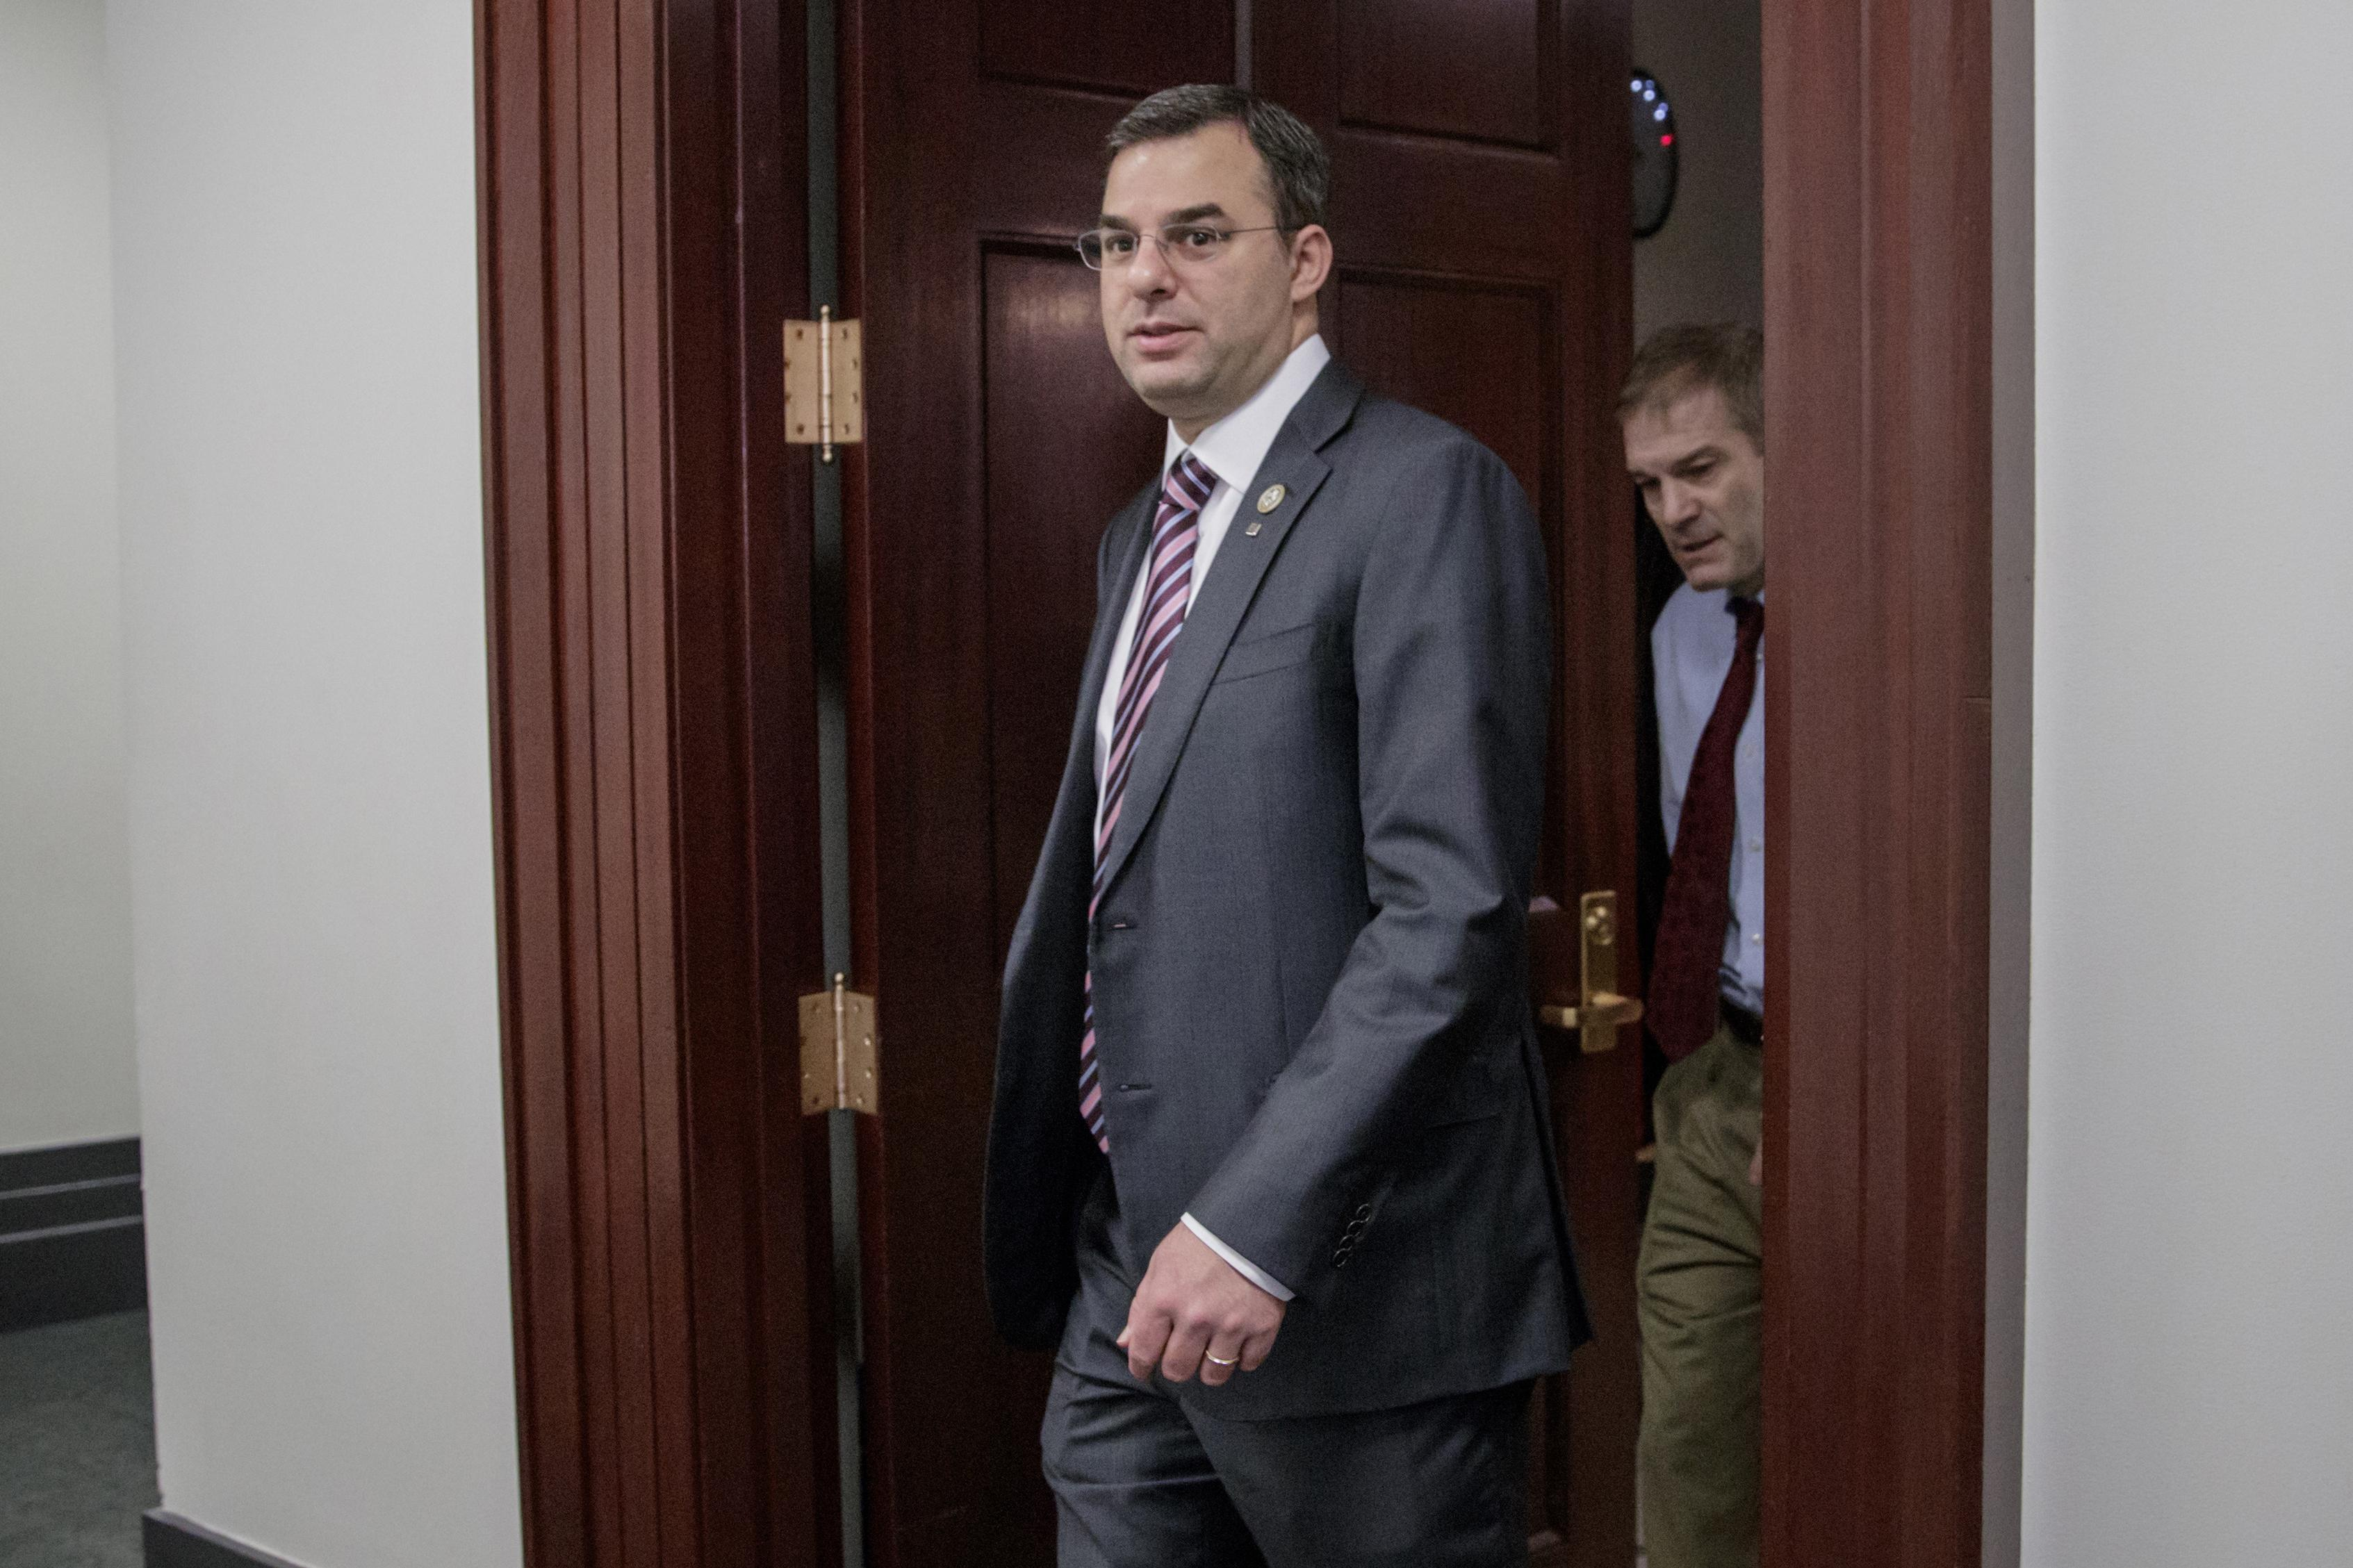 House Freedom Caucus condemns Justin Amash for Trump impeachment comments